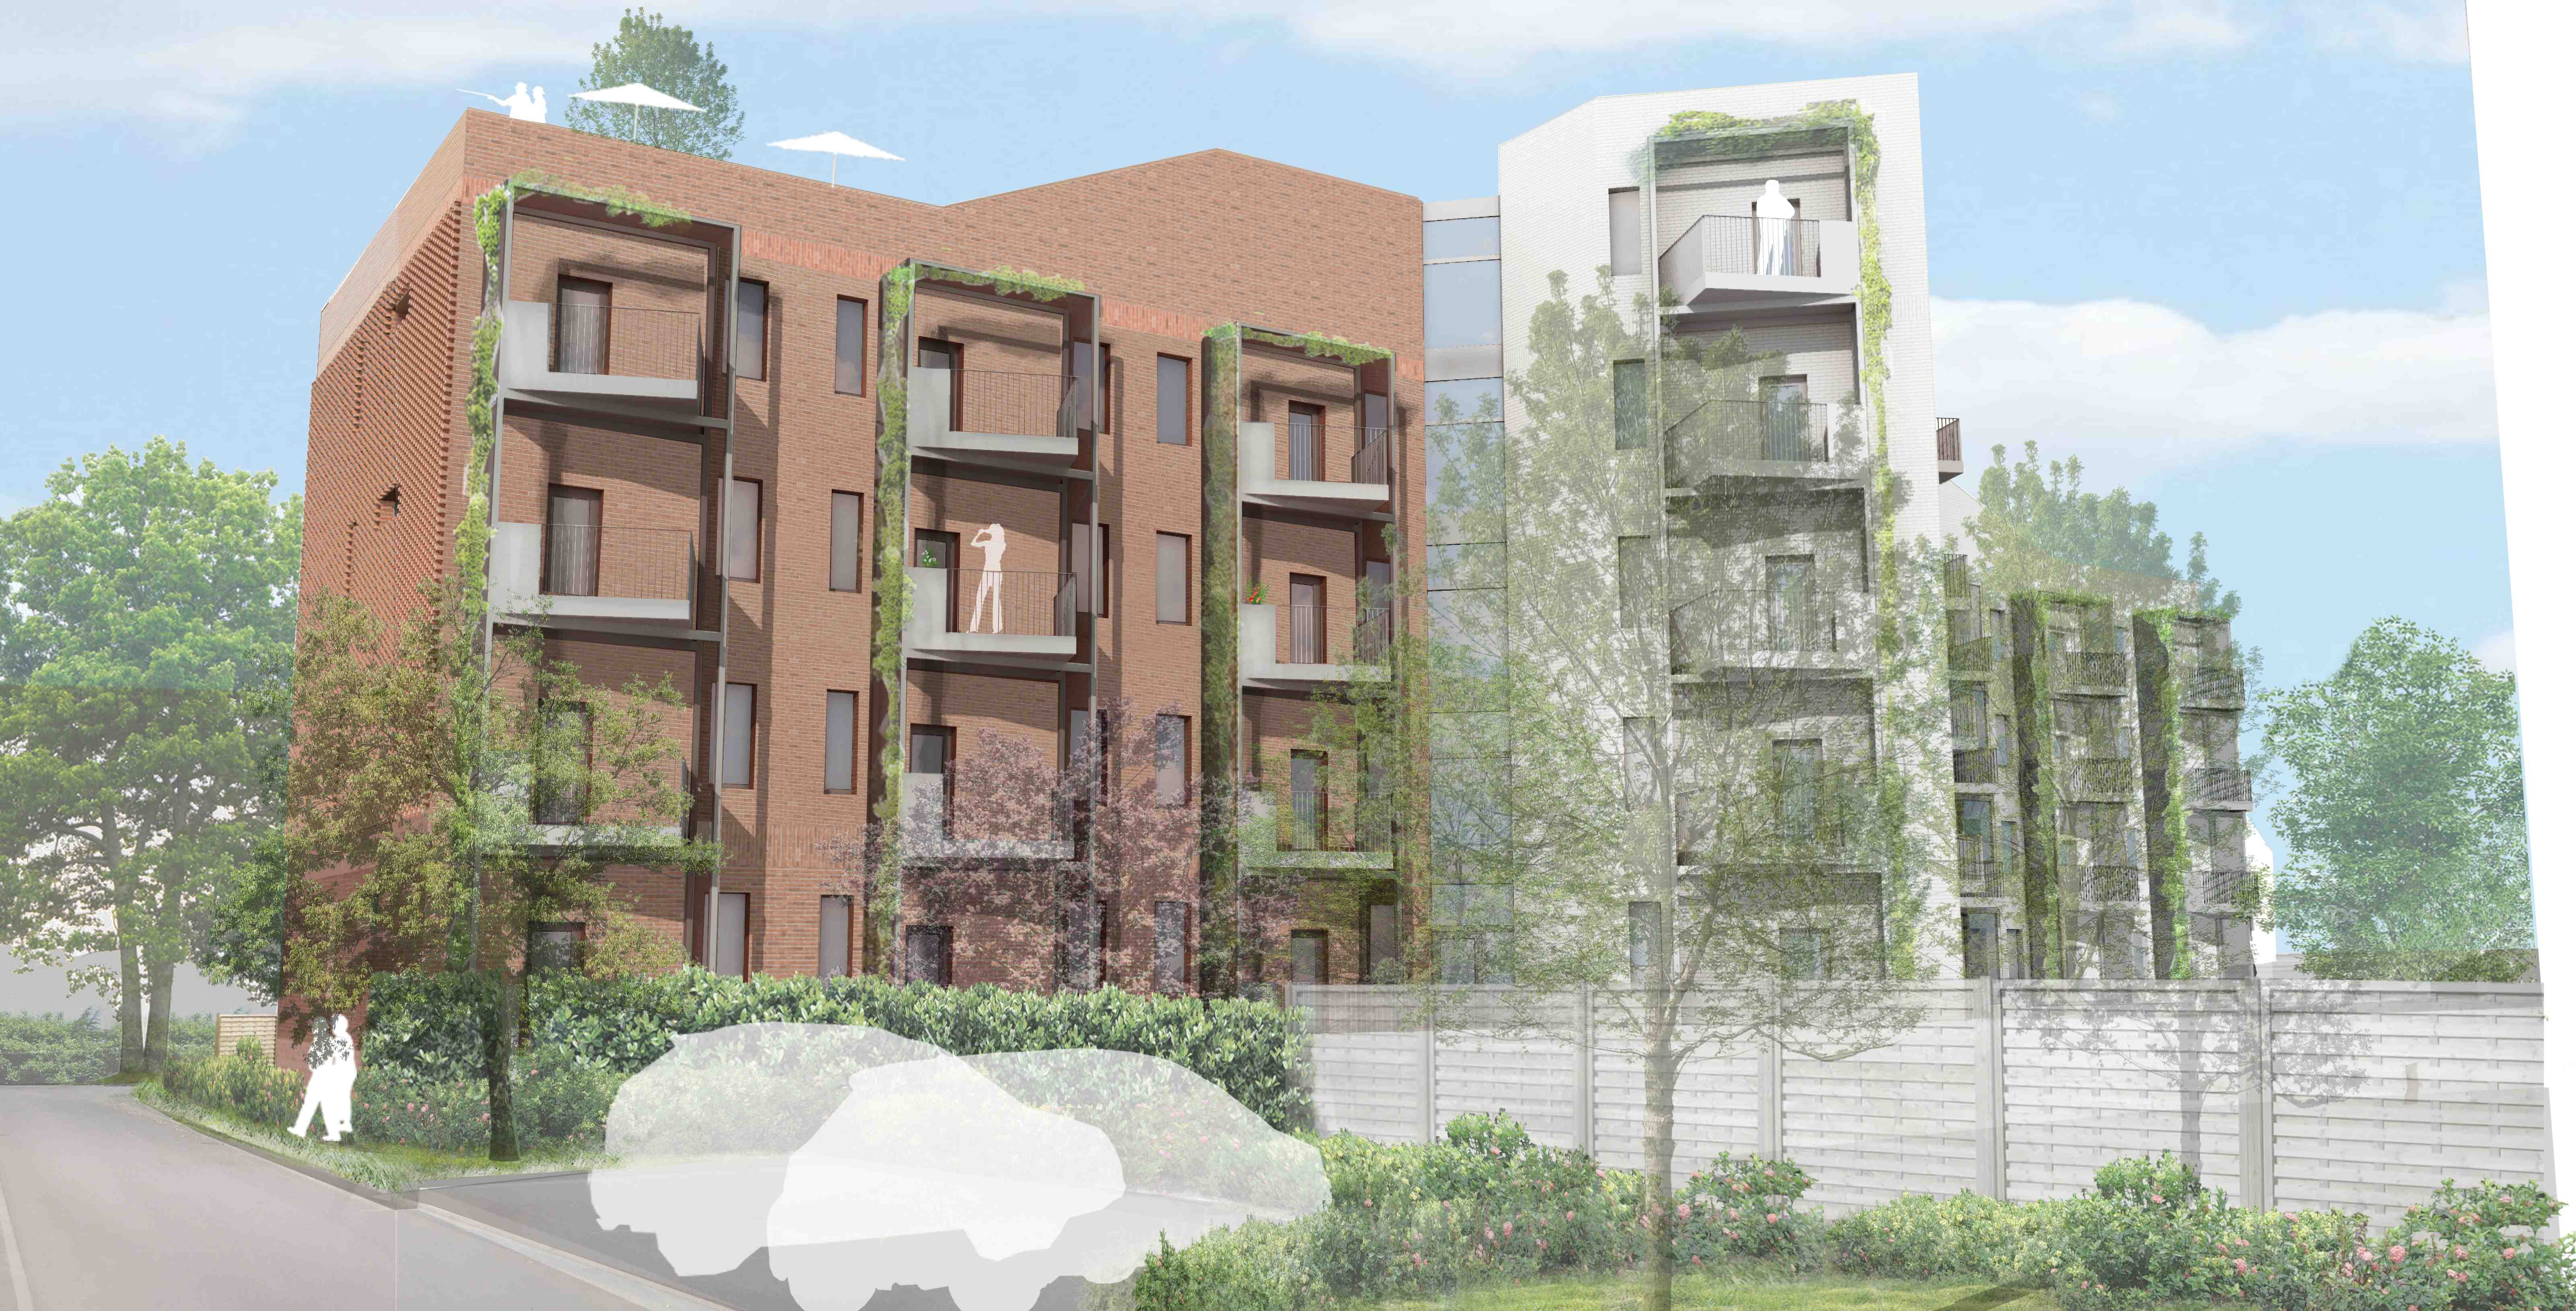 St Loyes Extra Care Housing, Exeter. Architype